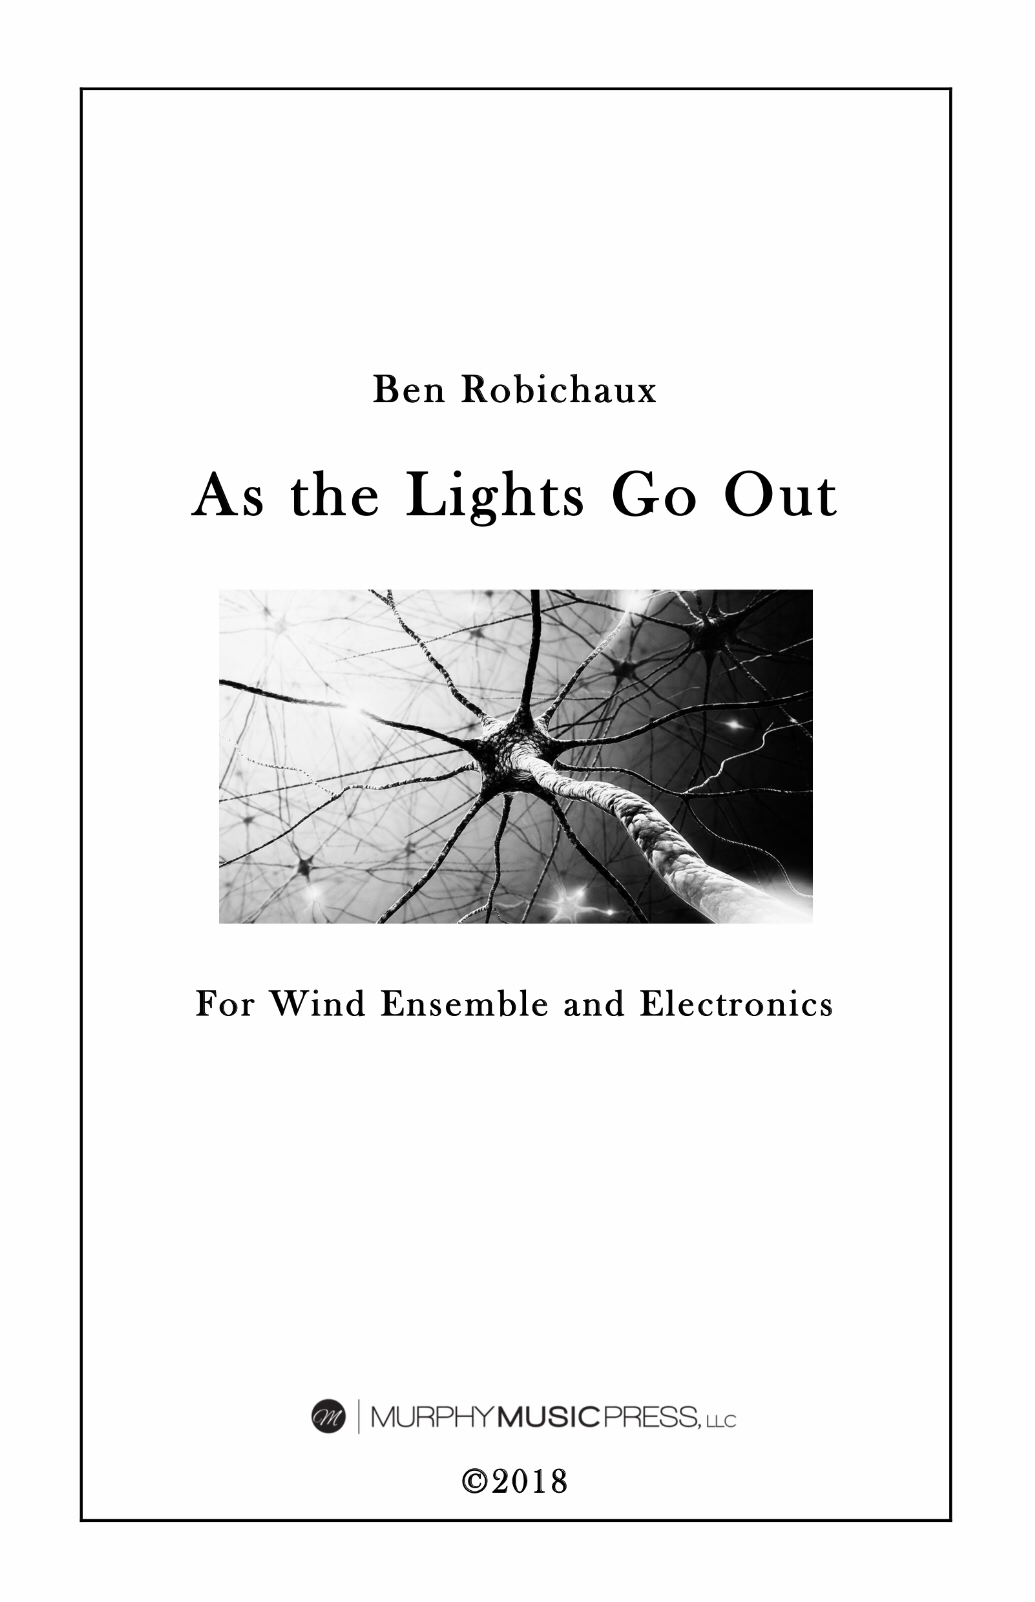 As The Lights Go Out by Ben Robichaux